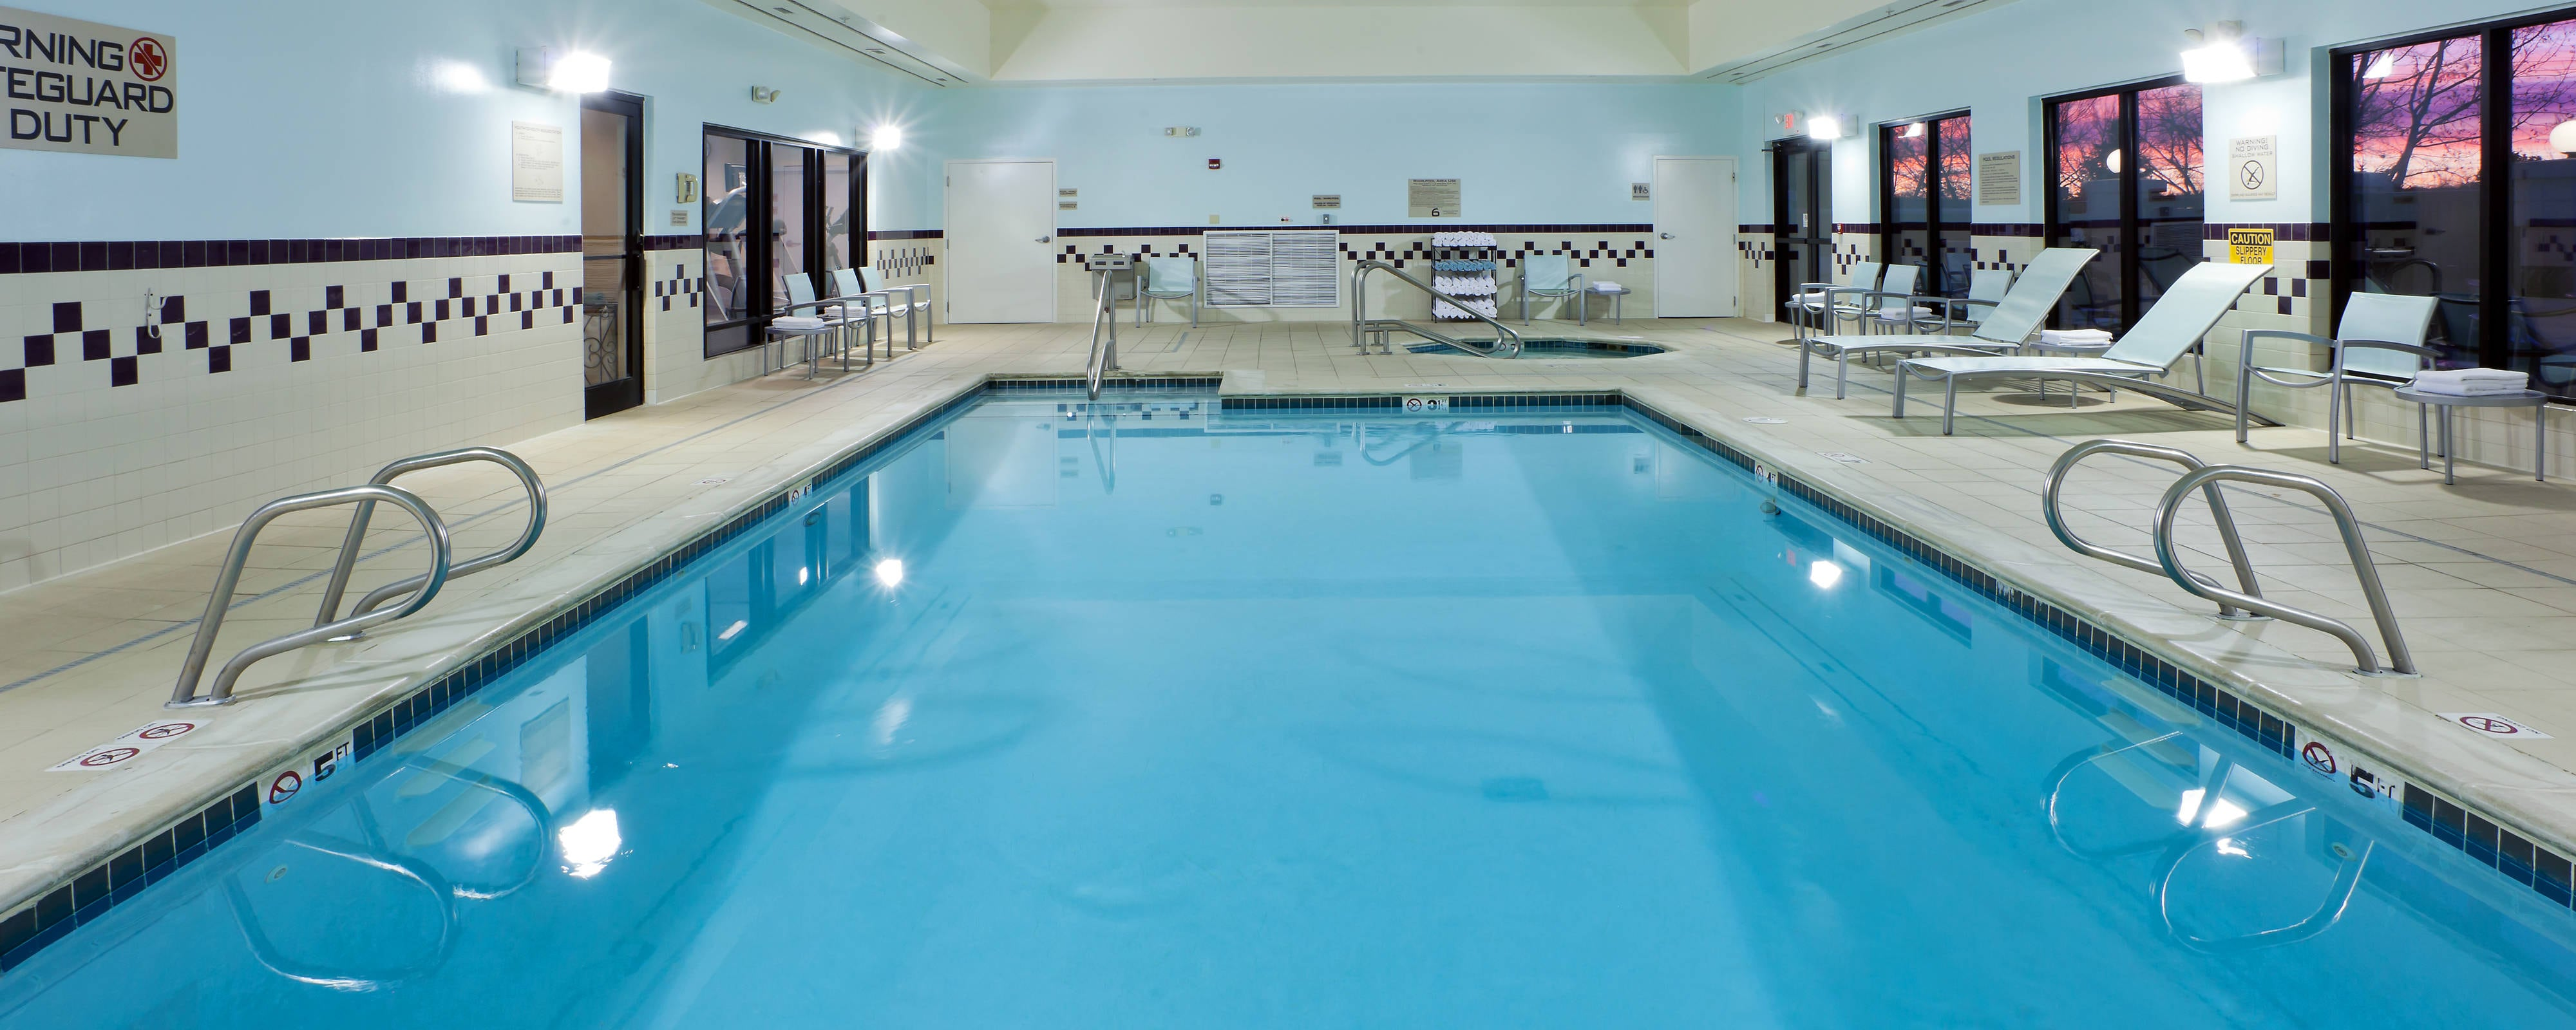 Piscina cubierta del SpringHill Suites Westminster